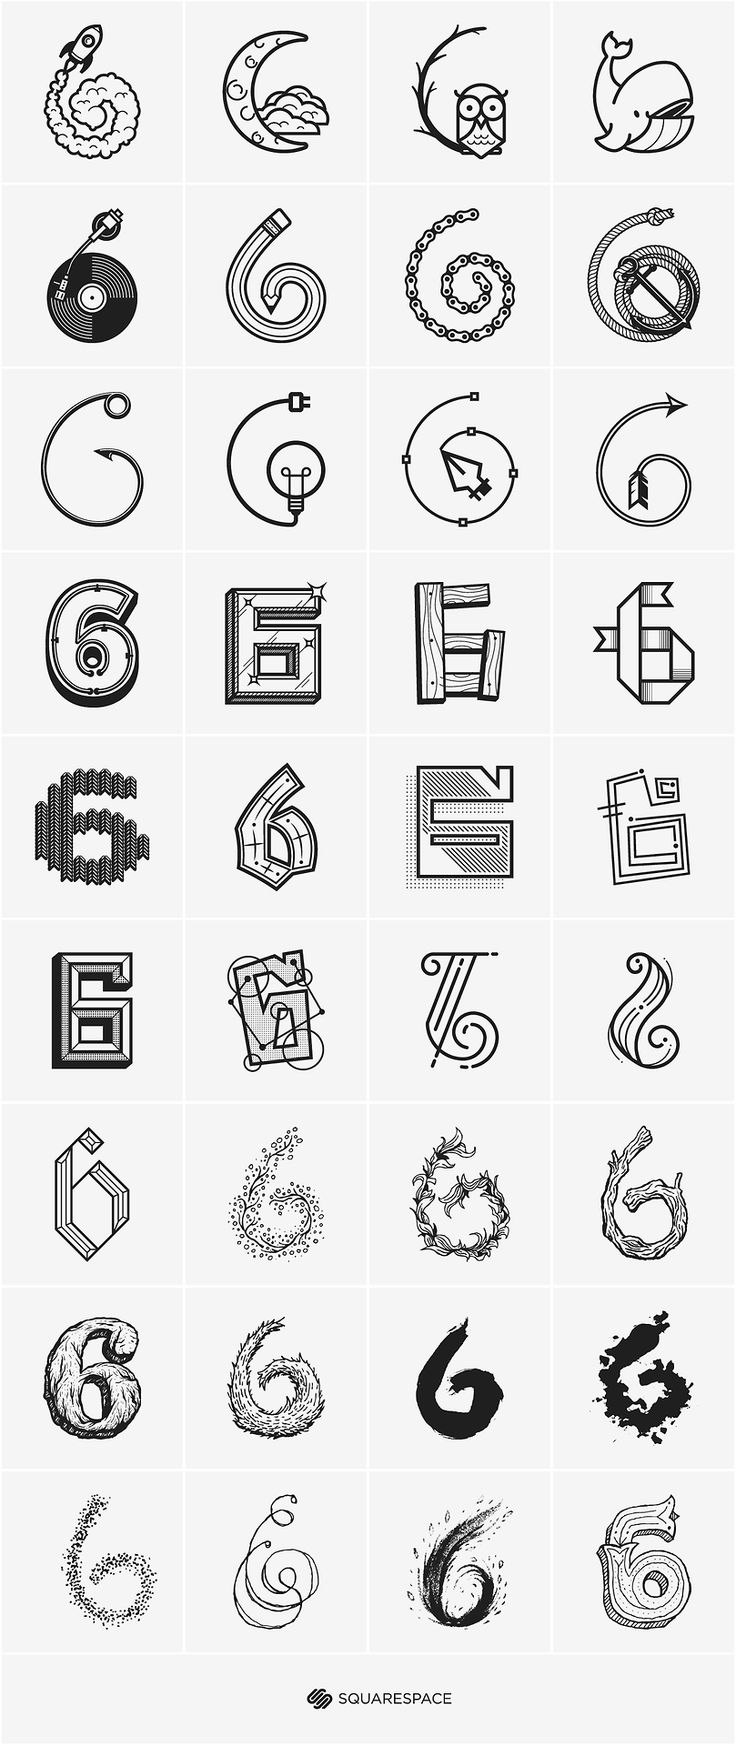 6 squared by Ryan Putnam.  I love how the artist demonstrates how a simple number six can be transformed so many different ways.  I am definitely using this as a sketchbook inspiration.  #6